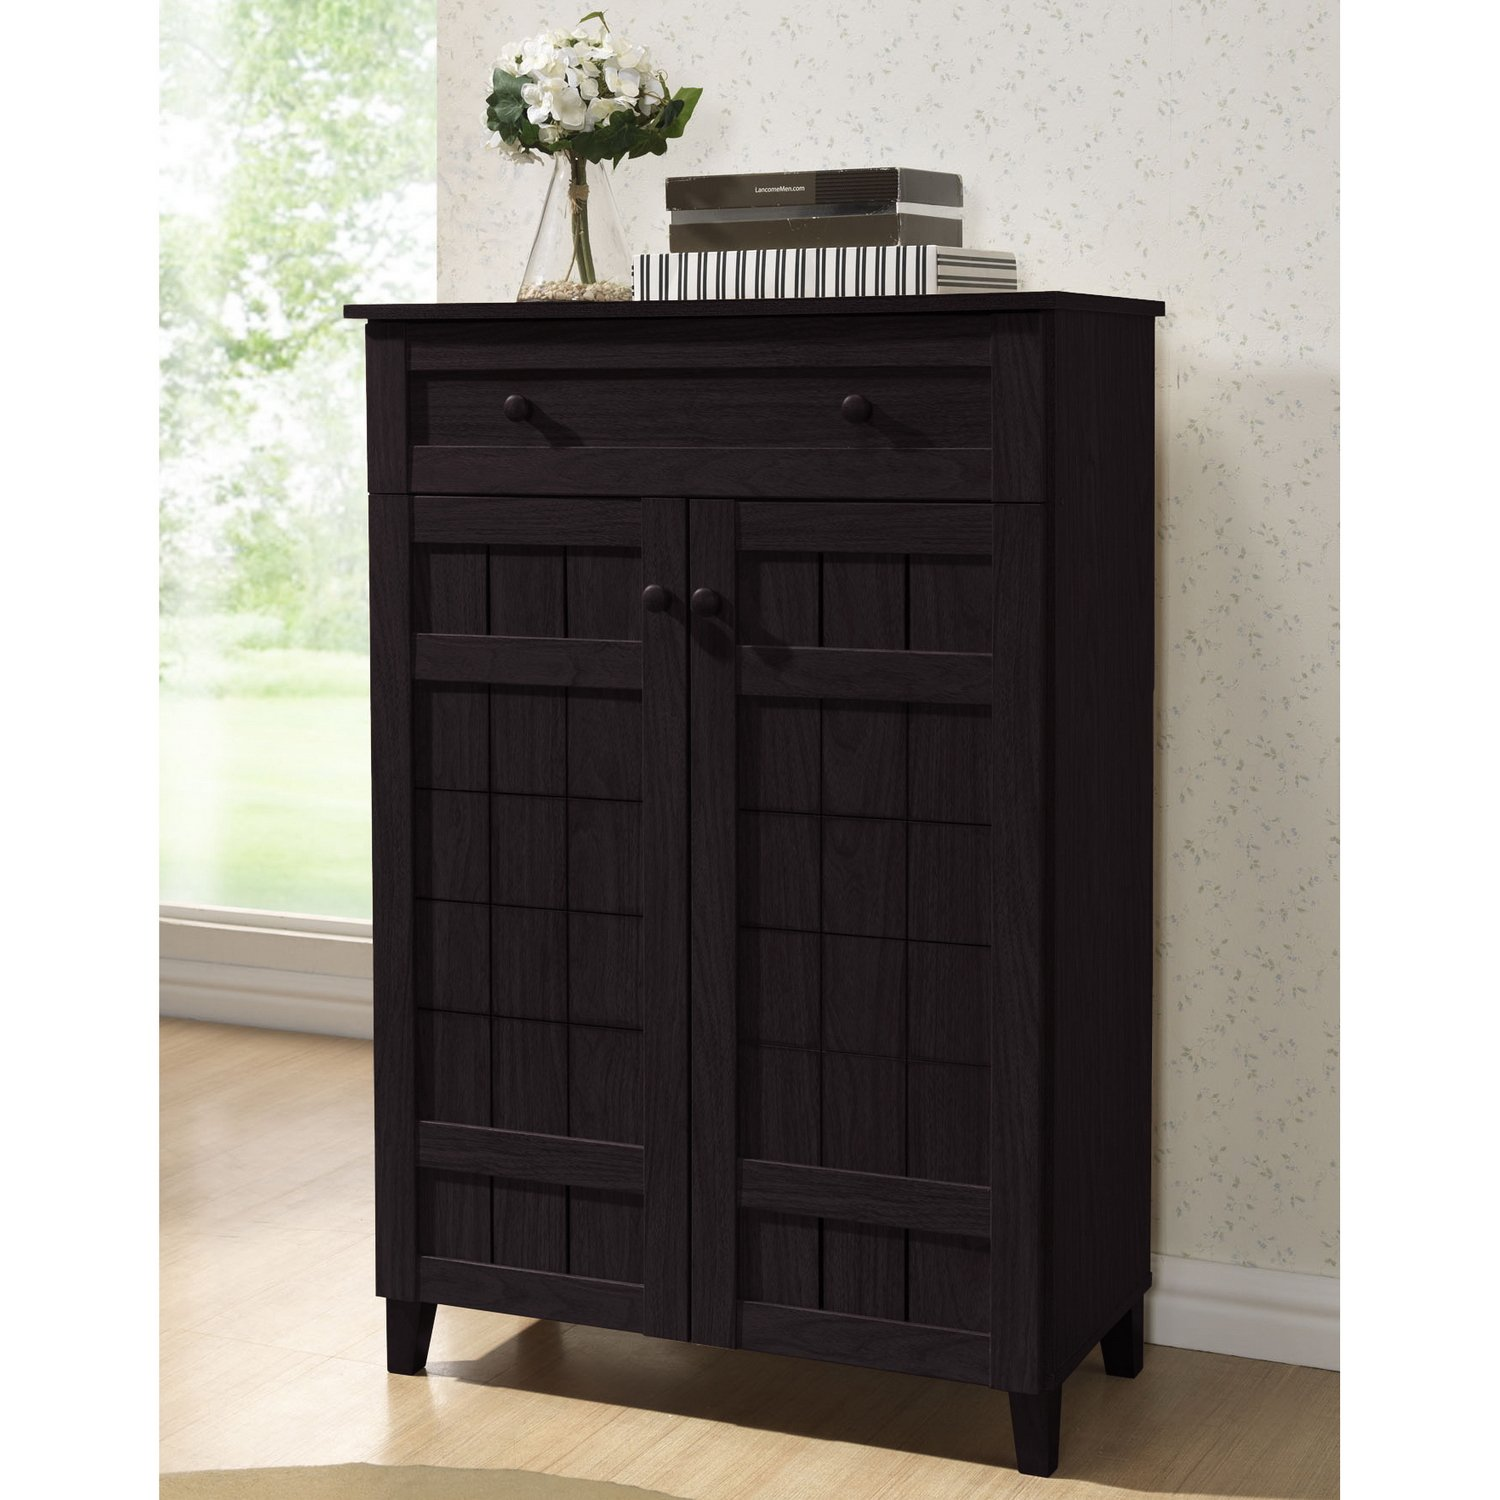 Lovely Baxton Studio Glidden Wood Modern Shoe Cabinet, Tall, Dark Brown:  Amazon.ca: Home U0026 Kitchen